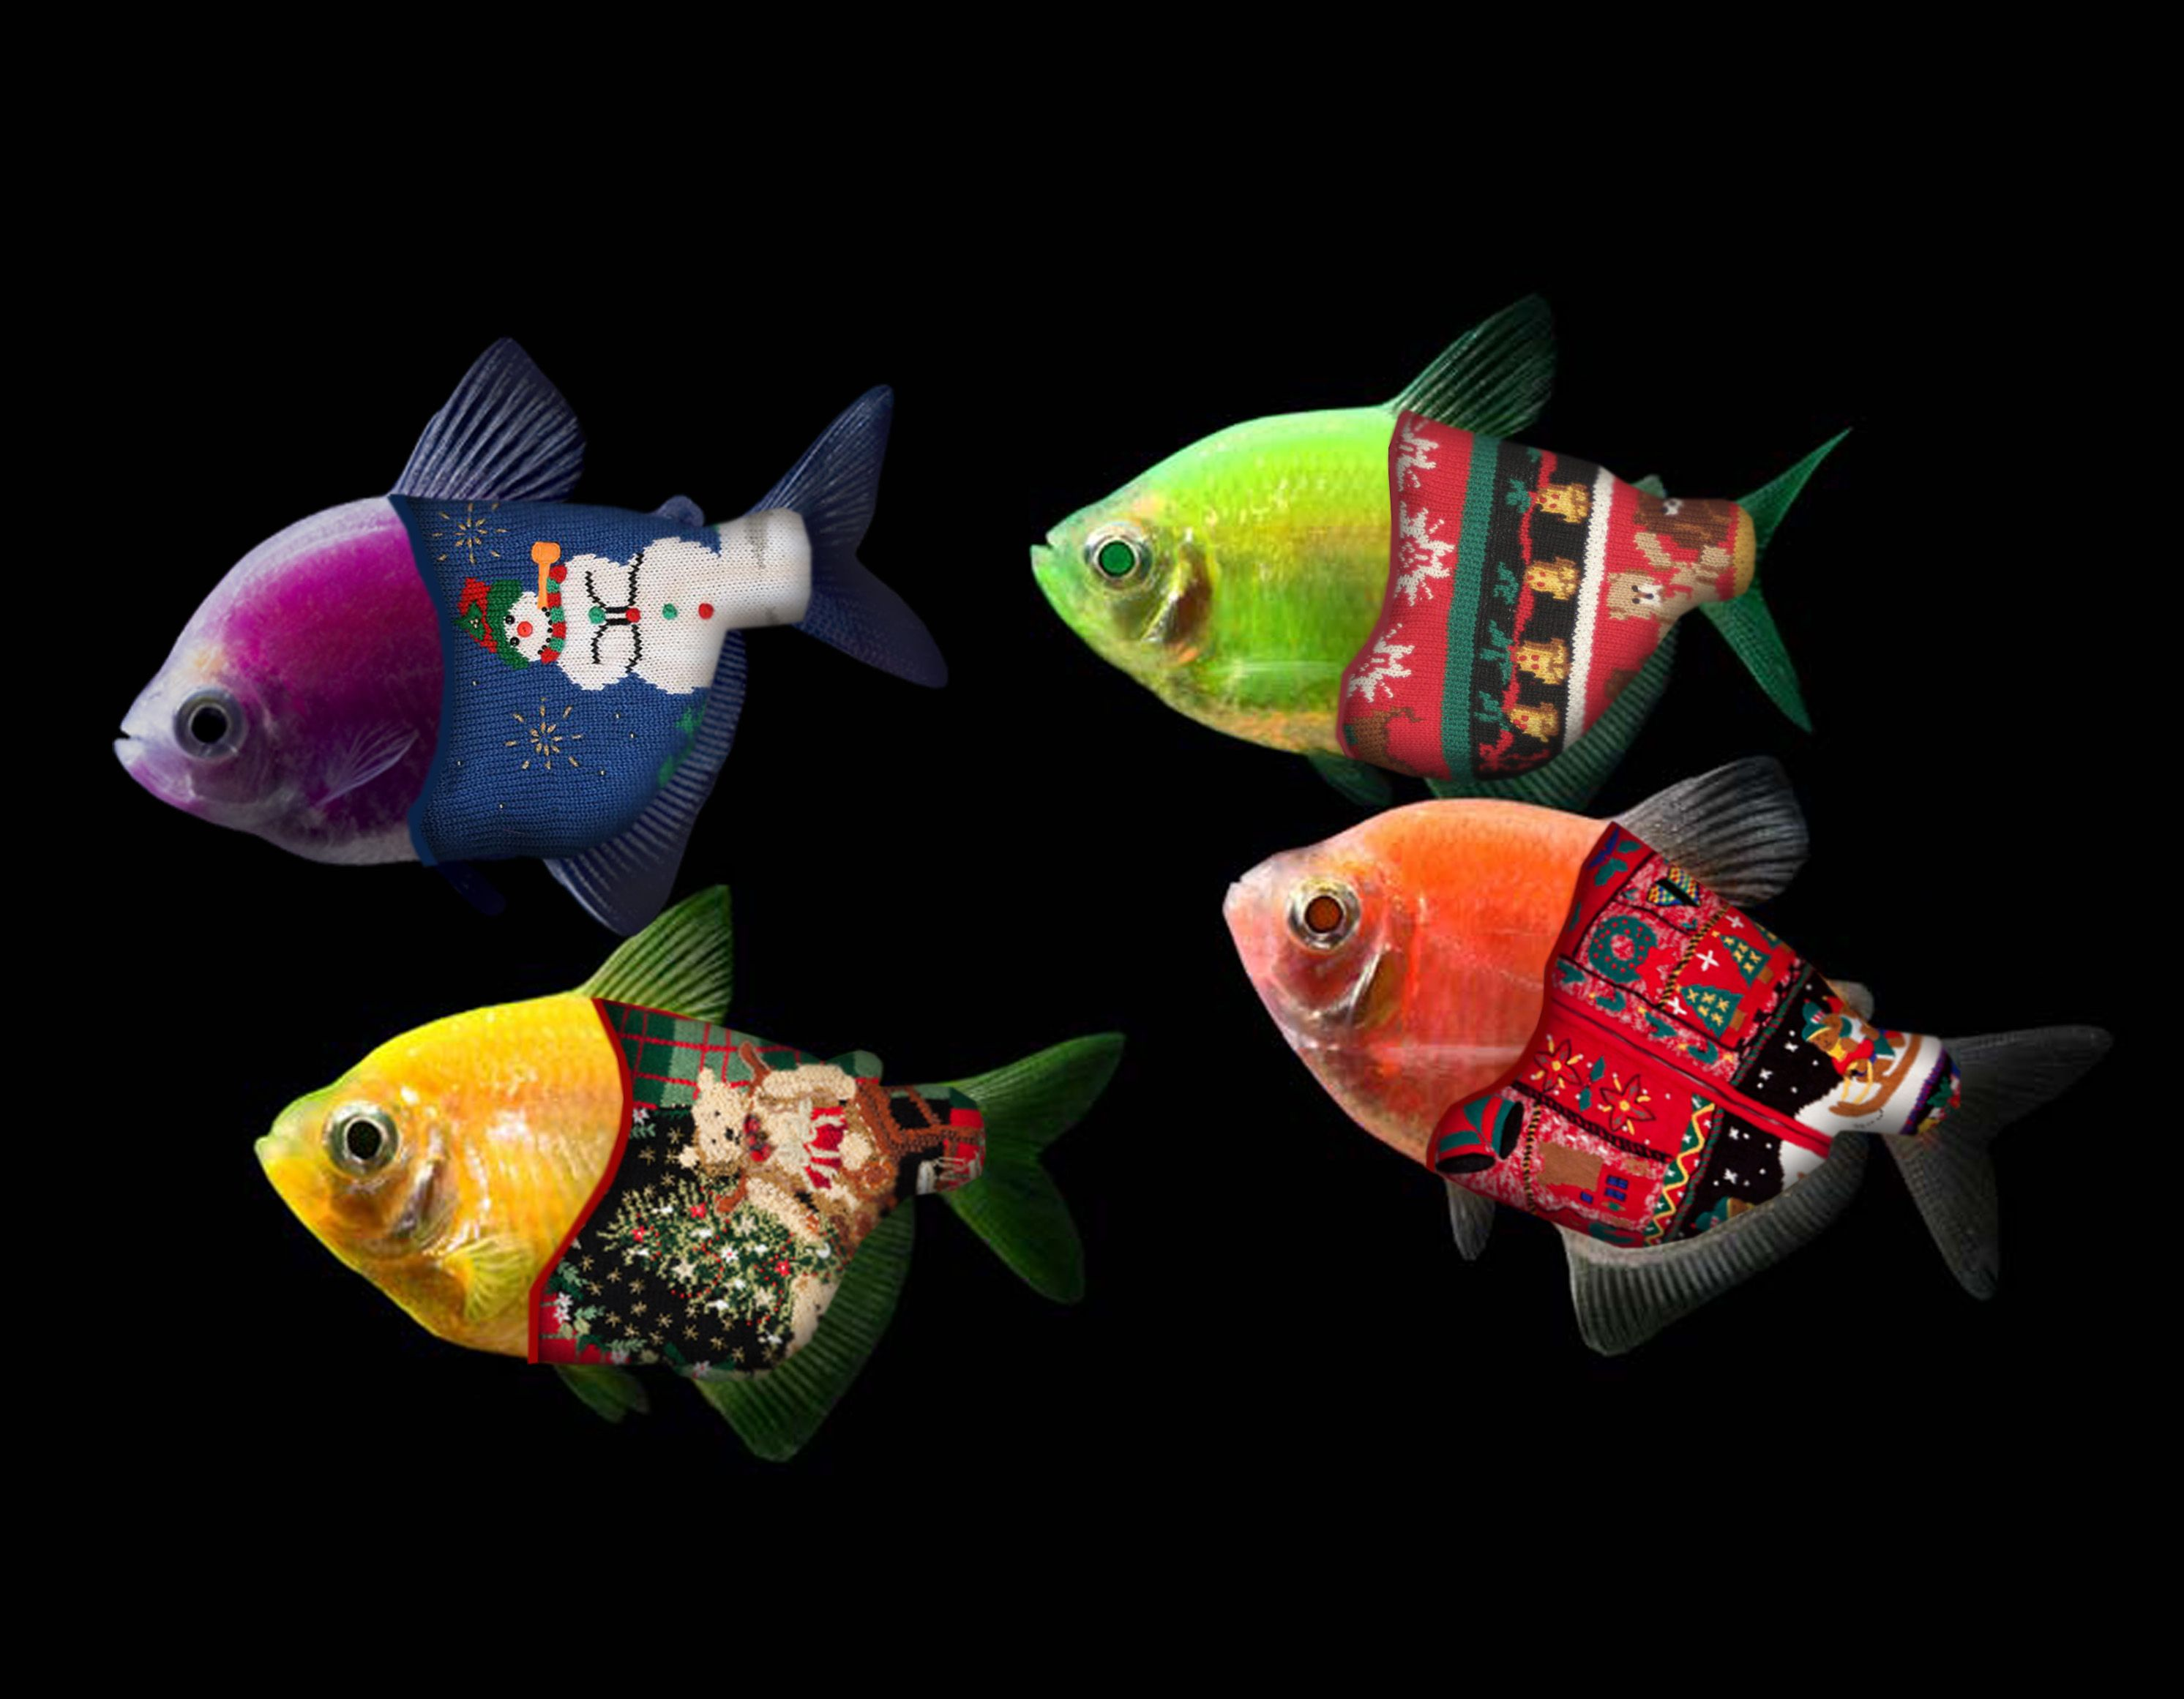 Merry Christmas and Happy Holidays from the GloFish team